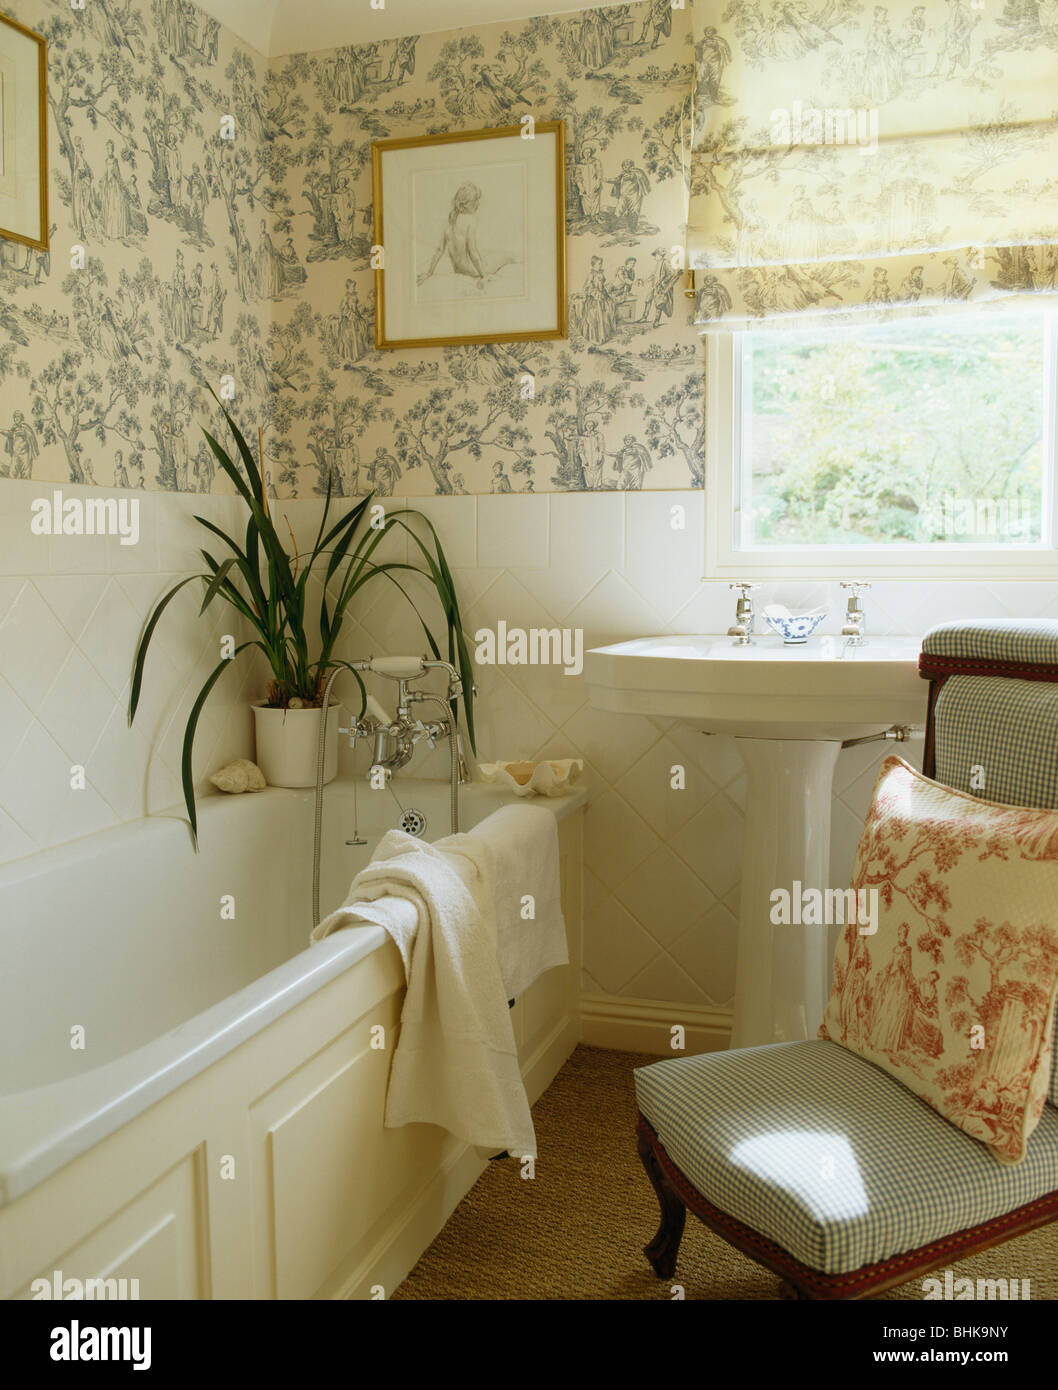 Blue White Toile De Jouy Wallpaper And Blind In Small Bathroom With Houseplant On Side Of The Bath